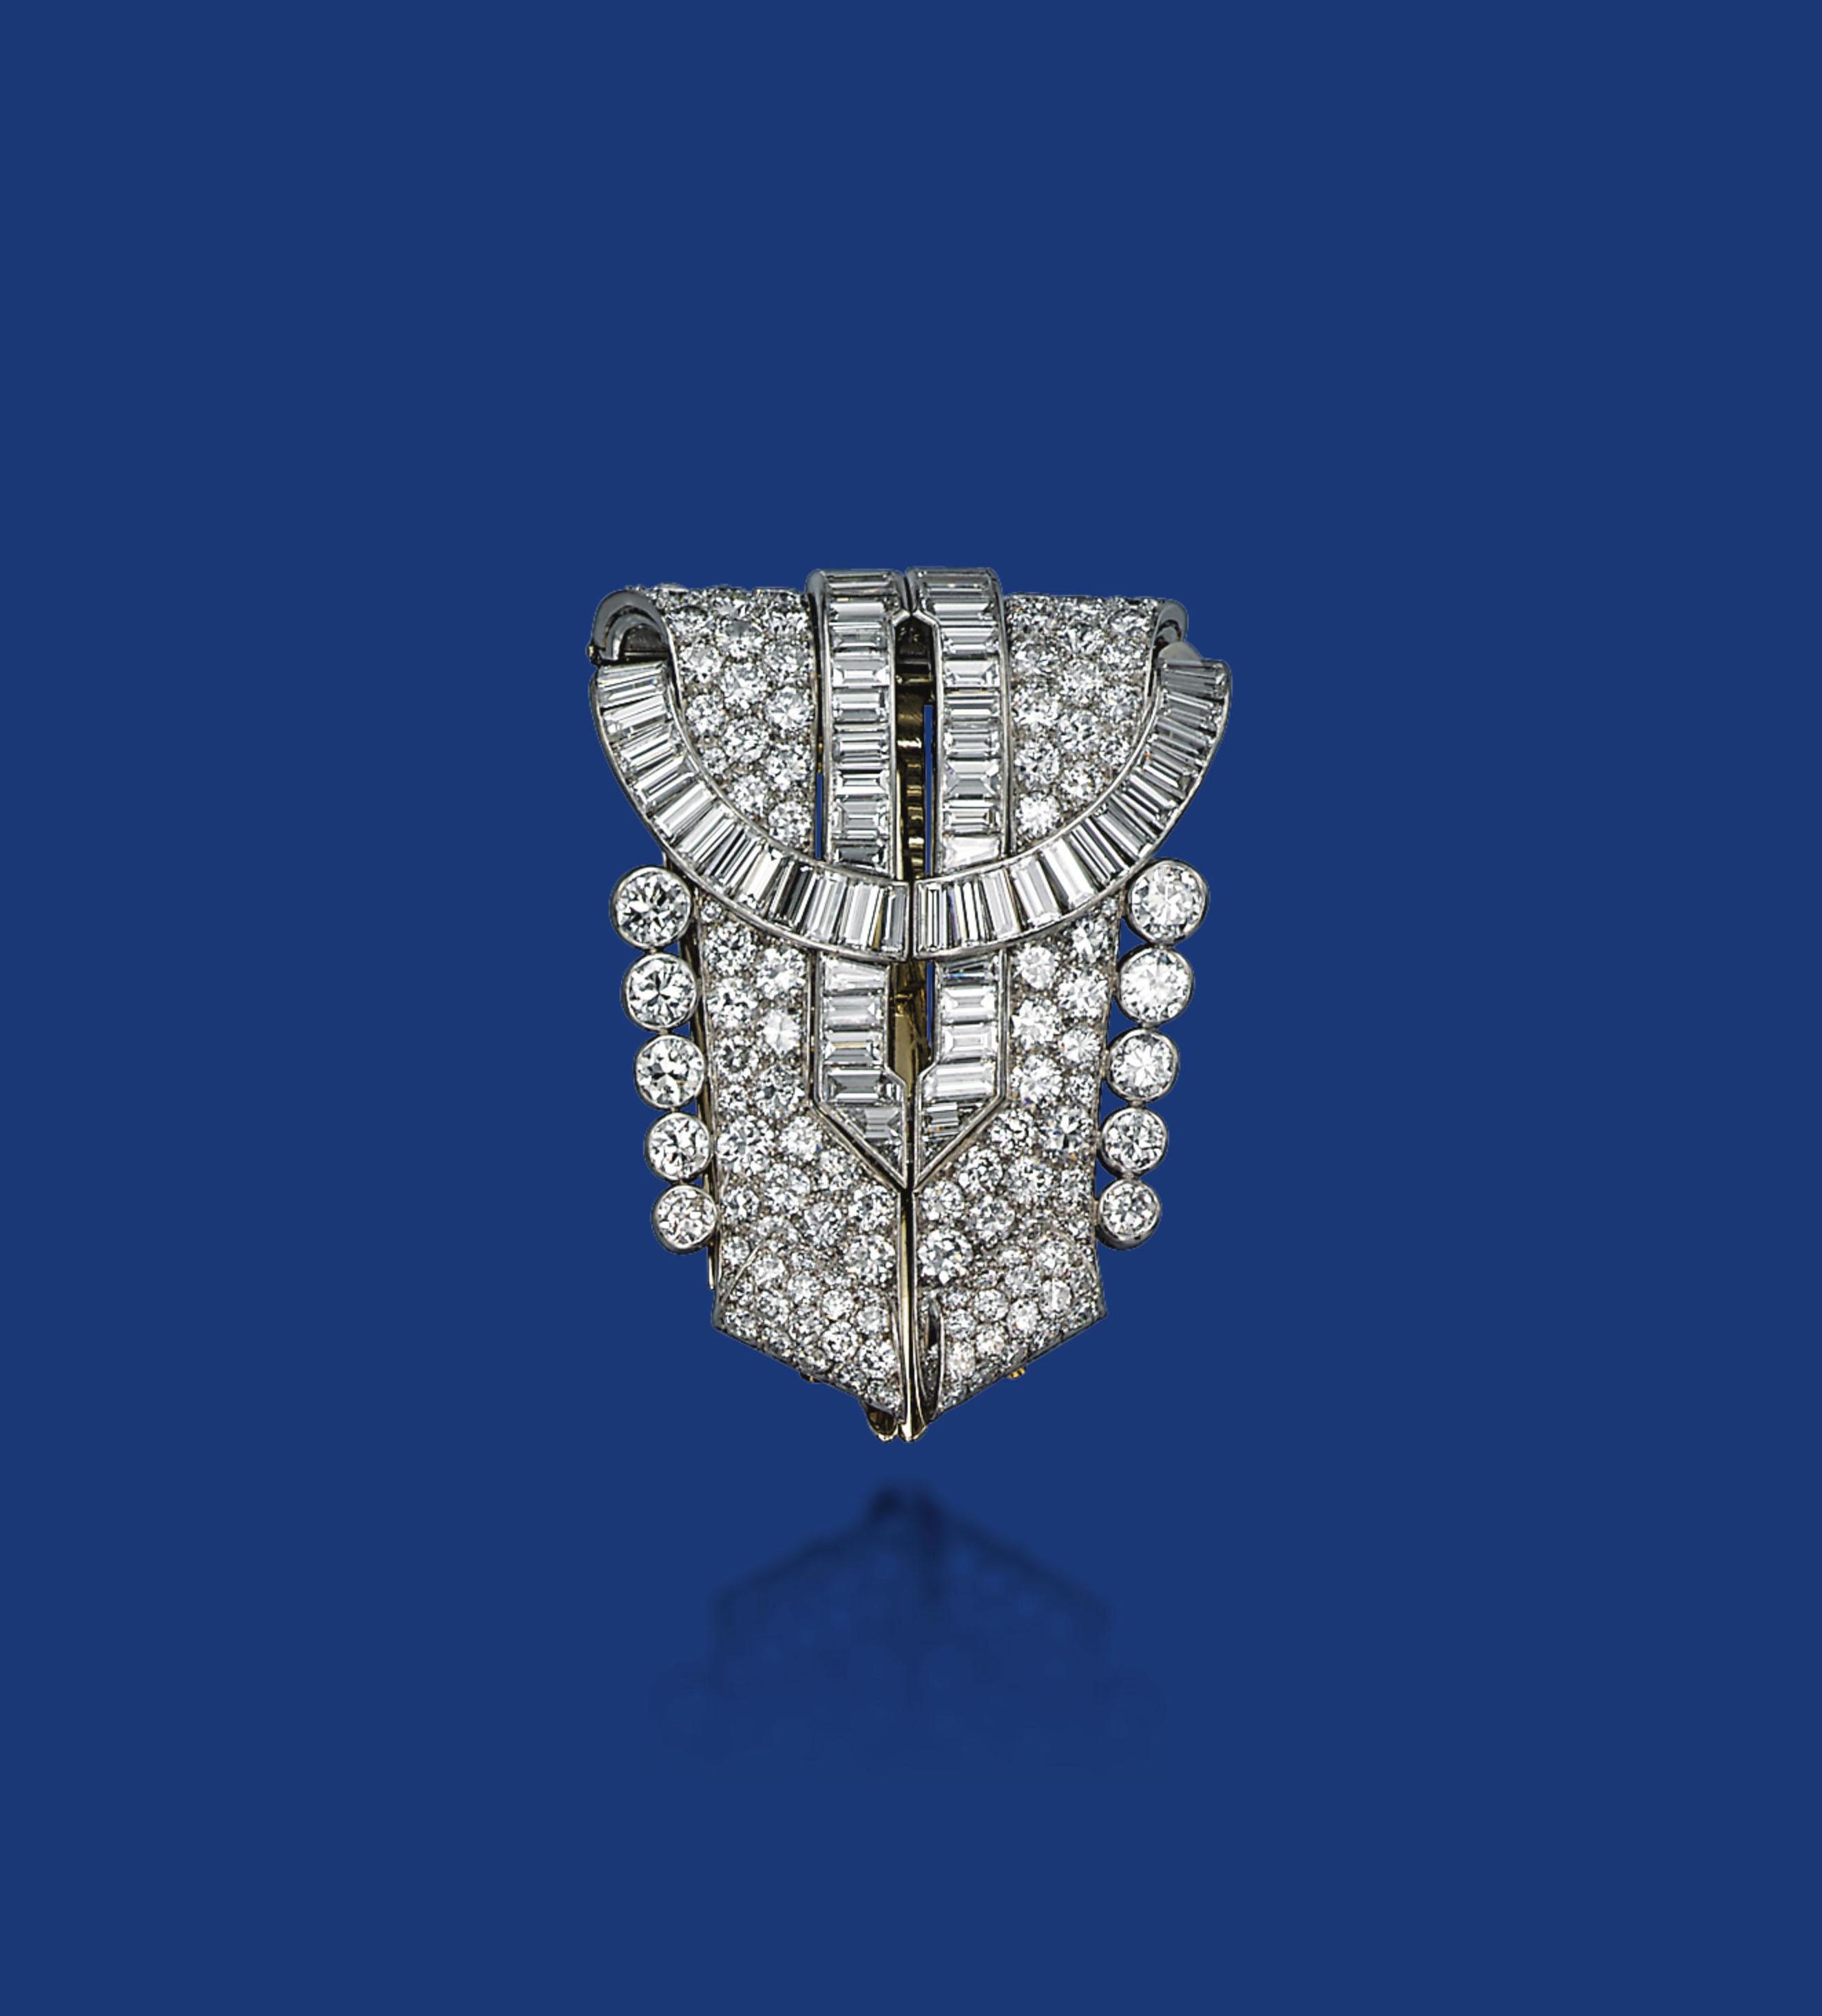 AN ART DECO DIAMOND BROOCH, BY OSTERTAG